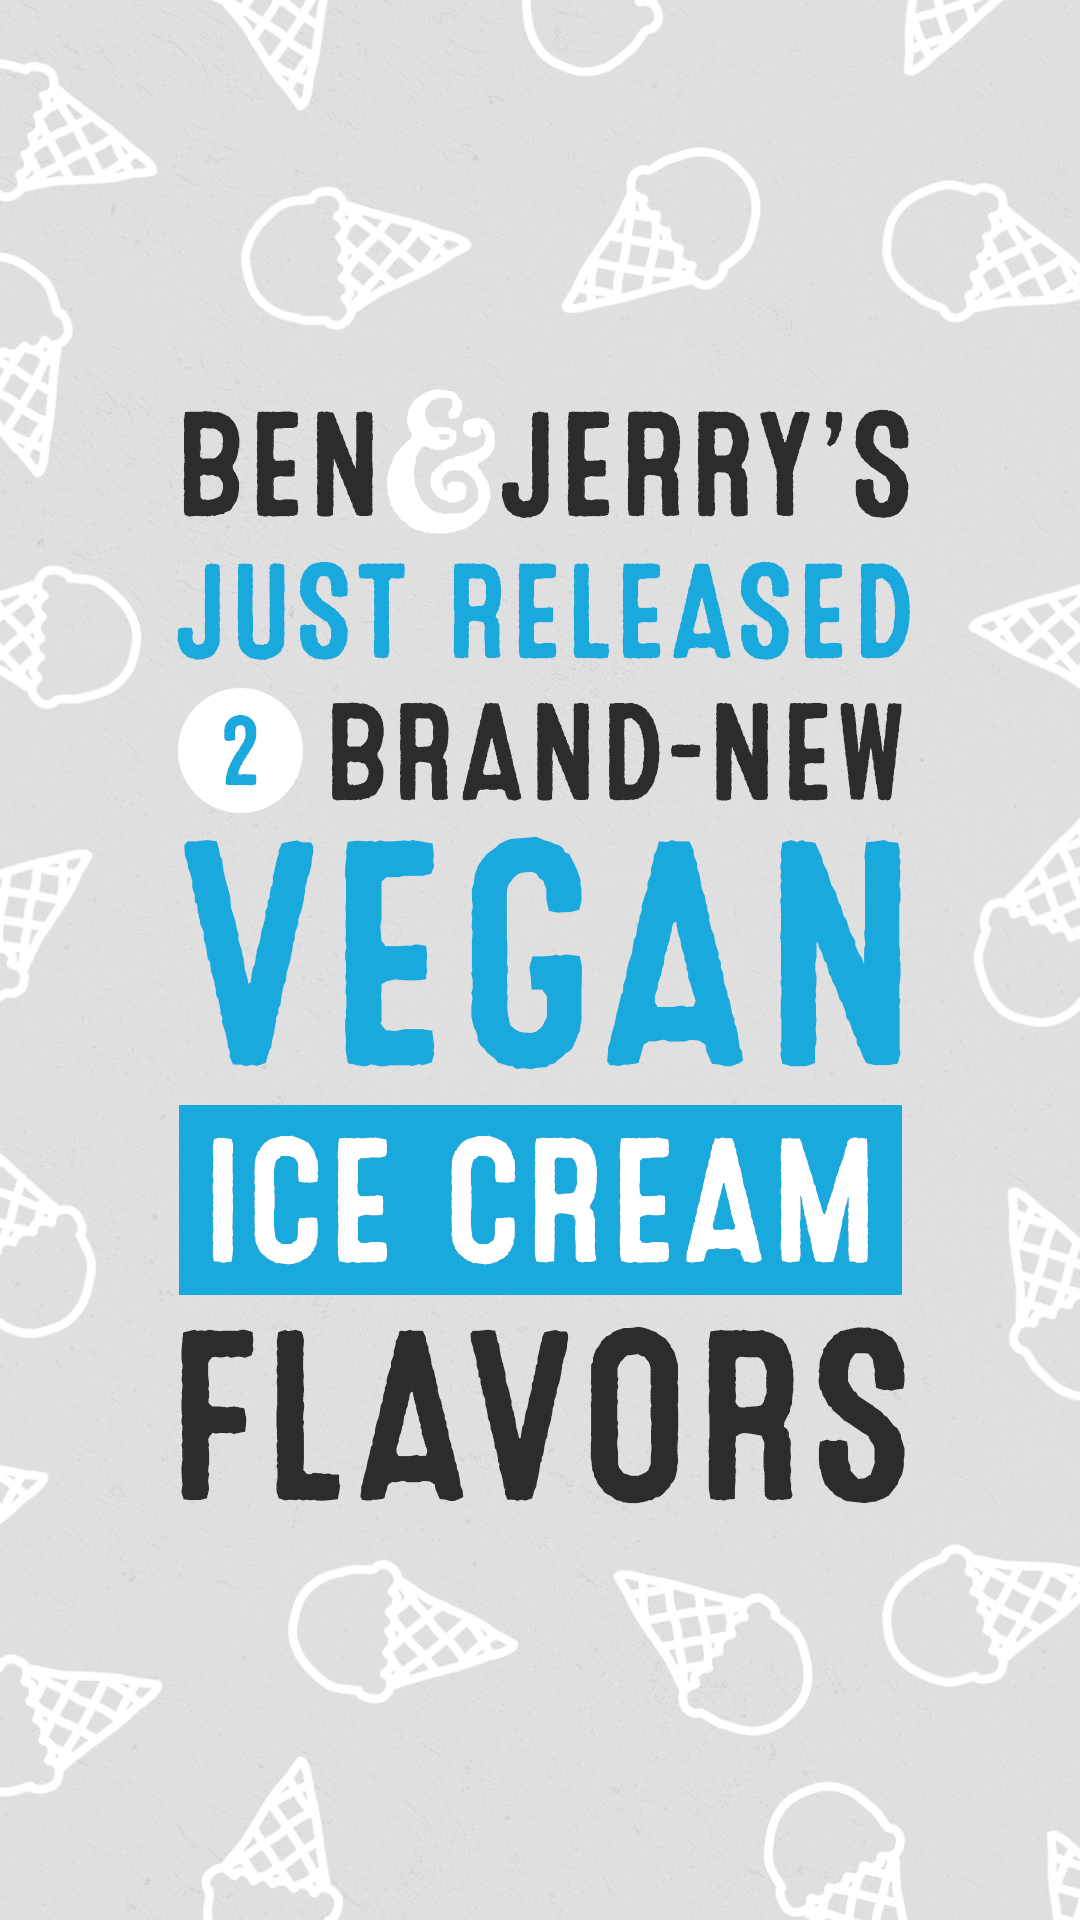 Ben & Jerry's Just Released Two Brand-New Vegan Ice Cream Flavors